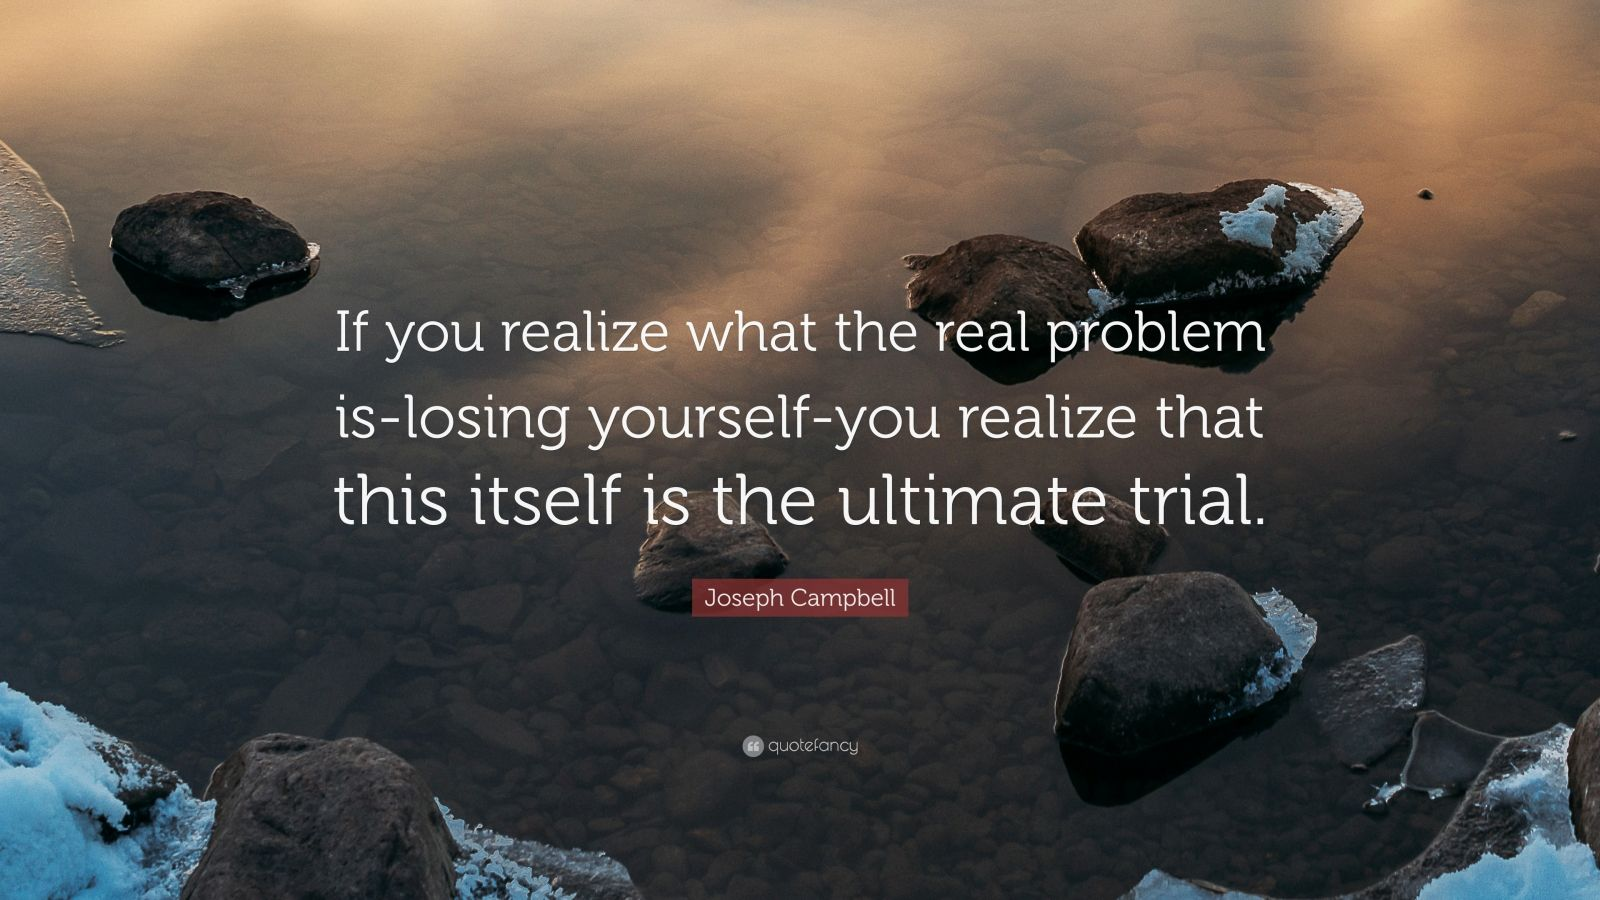 """Joseph Campbell Quote: """"If you realize what the real problem is-losing yourself-you realize that this itself is the ultimate trial."""""""